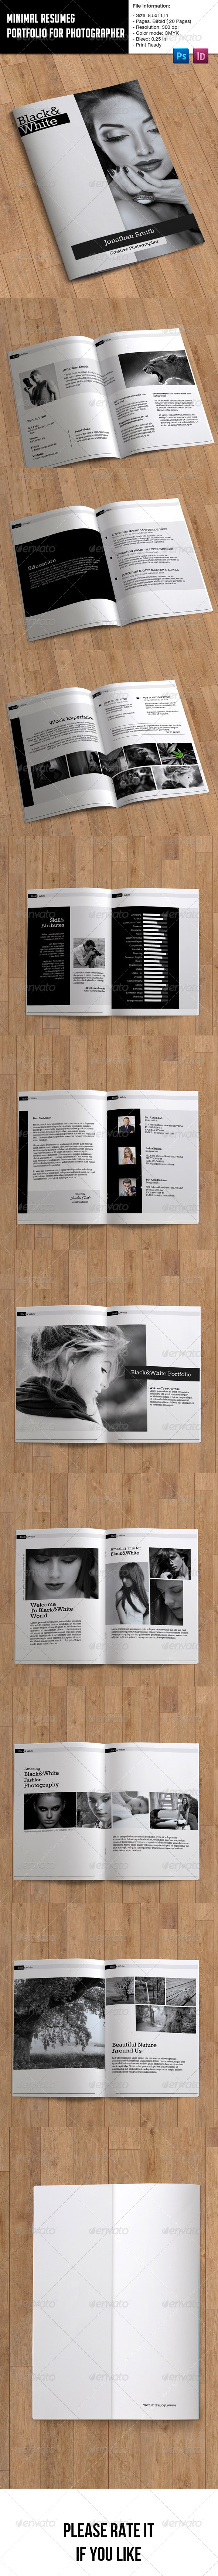 Minimal Resume and Portfolio Booklet